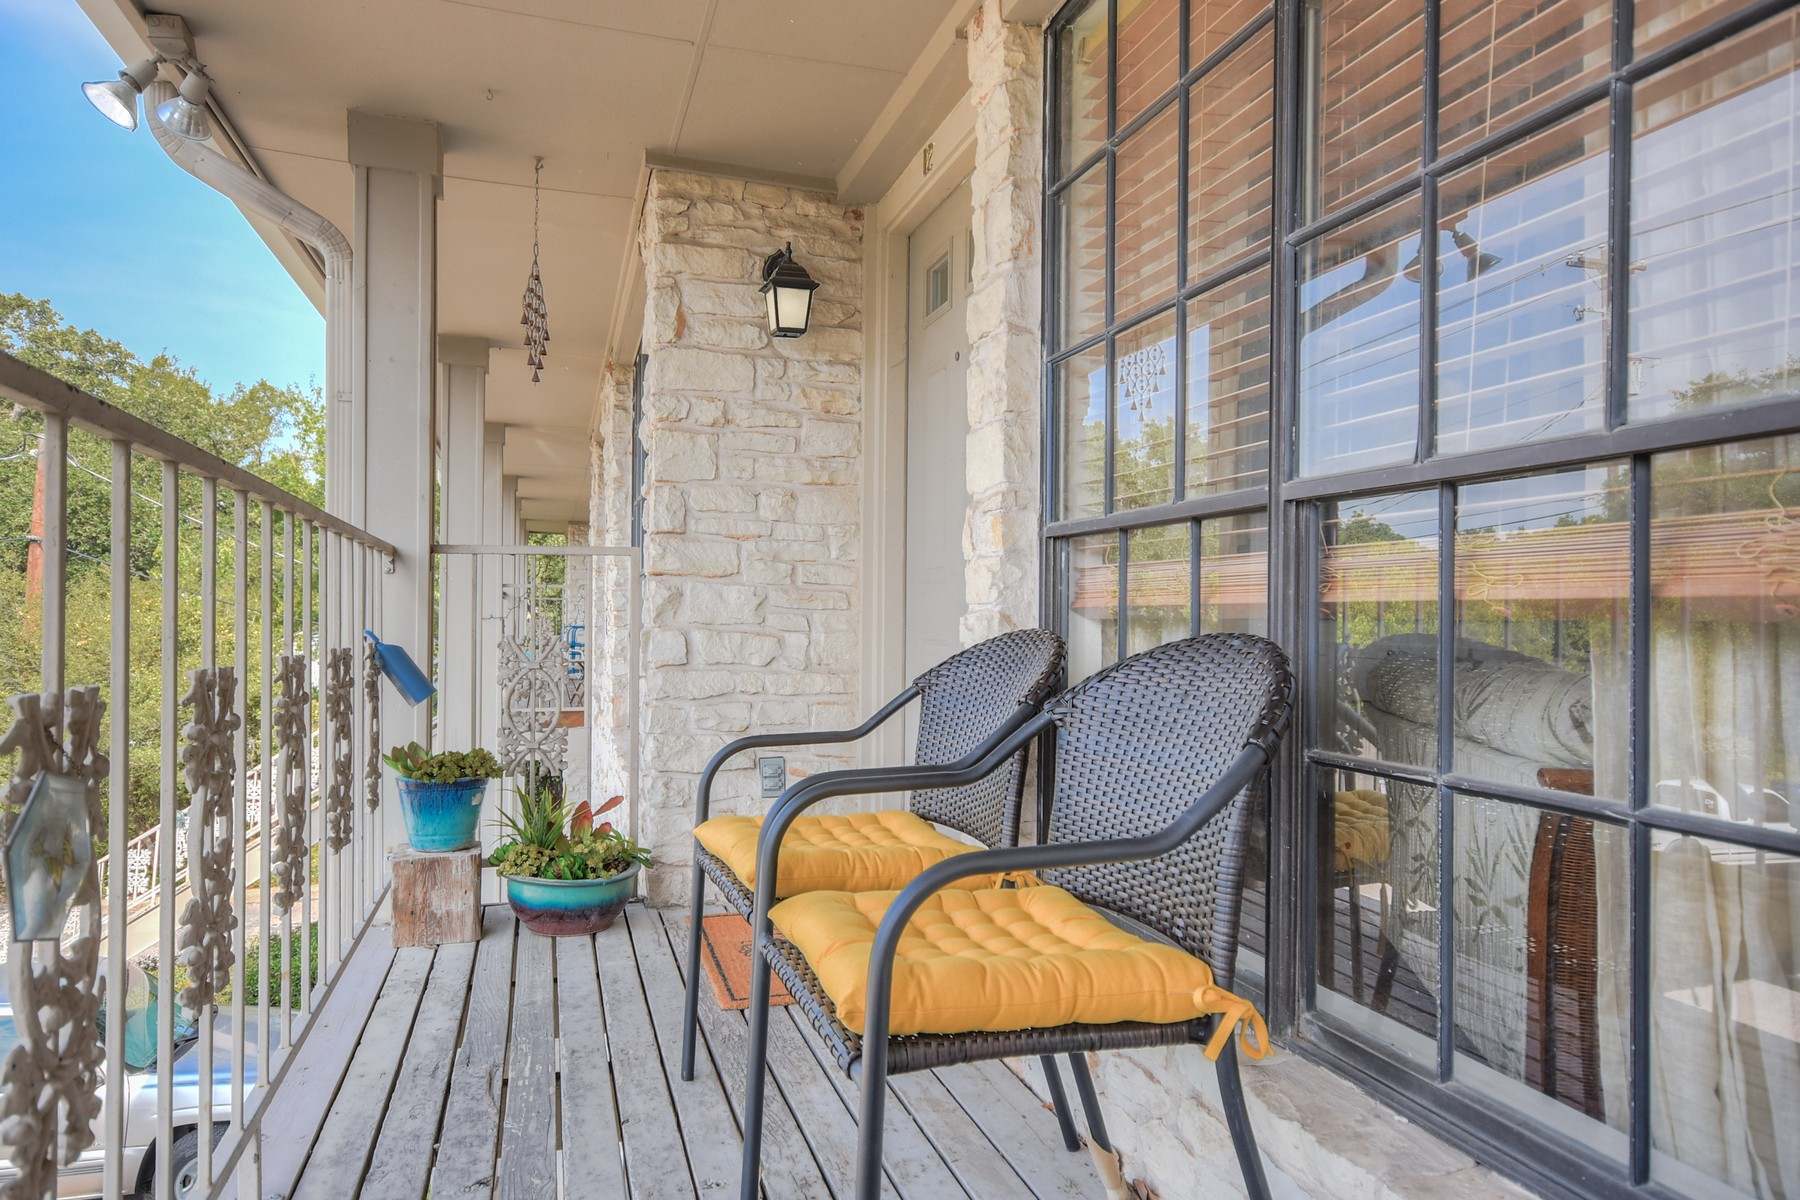 Condominium for Sale at Totally Renovated Clarksville Condo! 1610 Waterston Ave 12 Austin, Texas 78703 United States